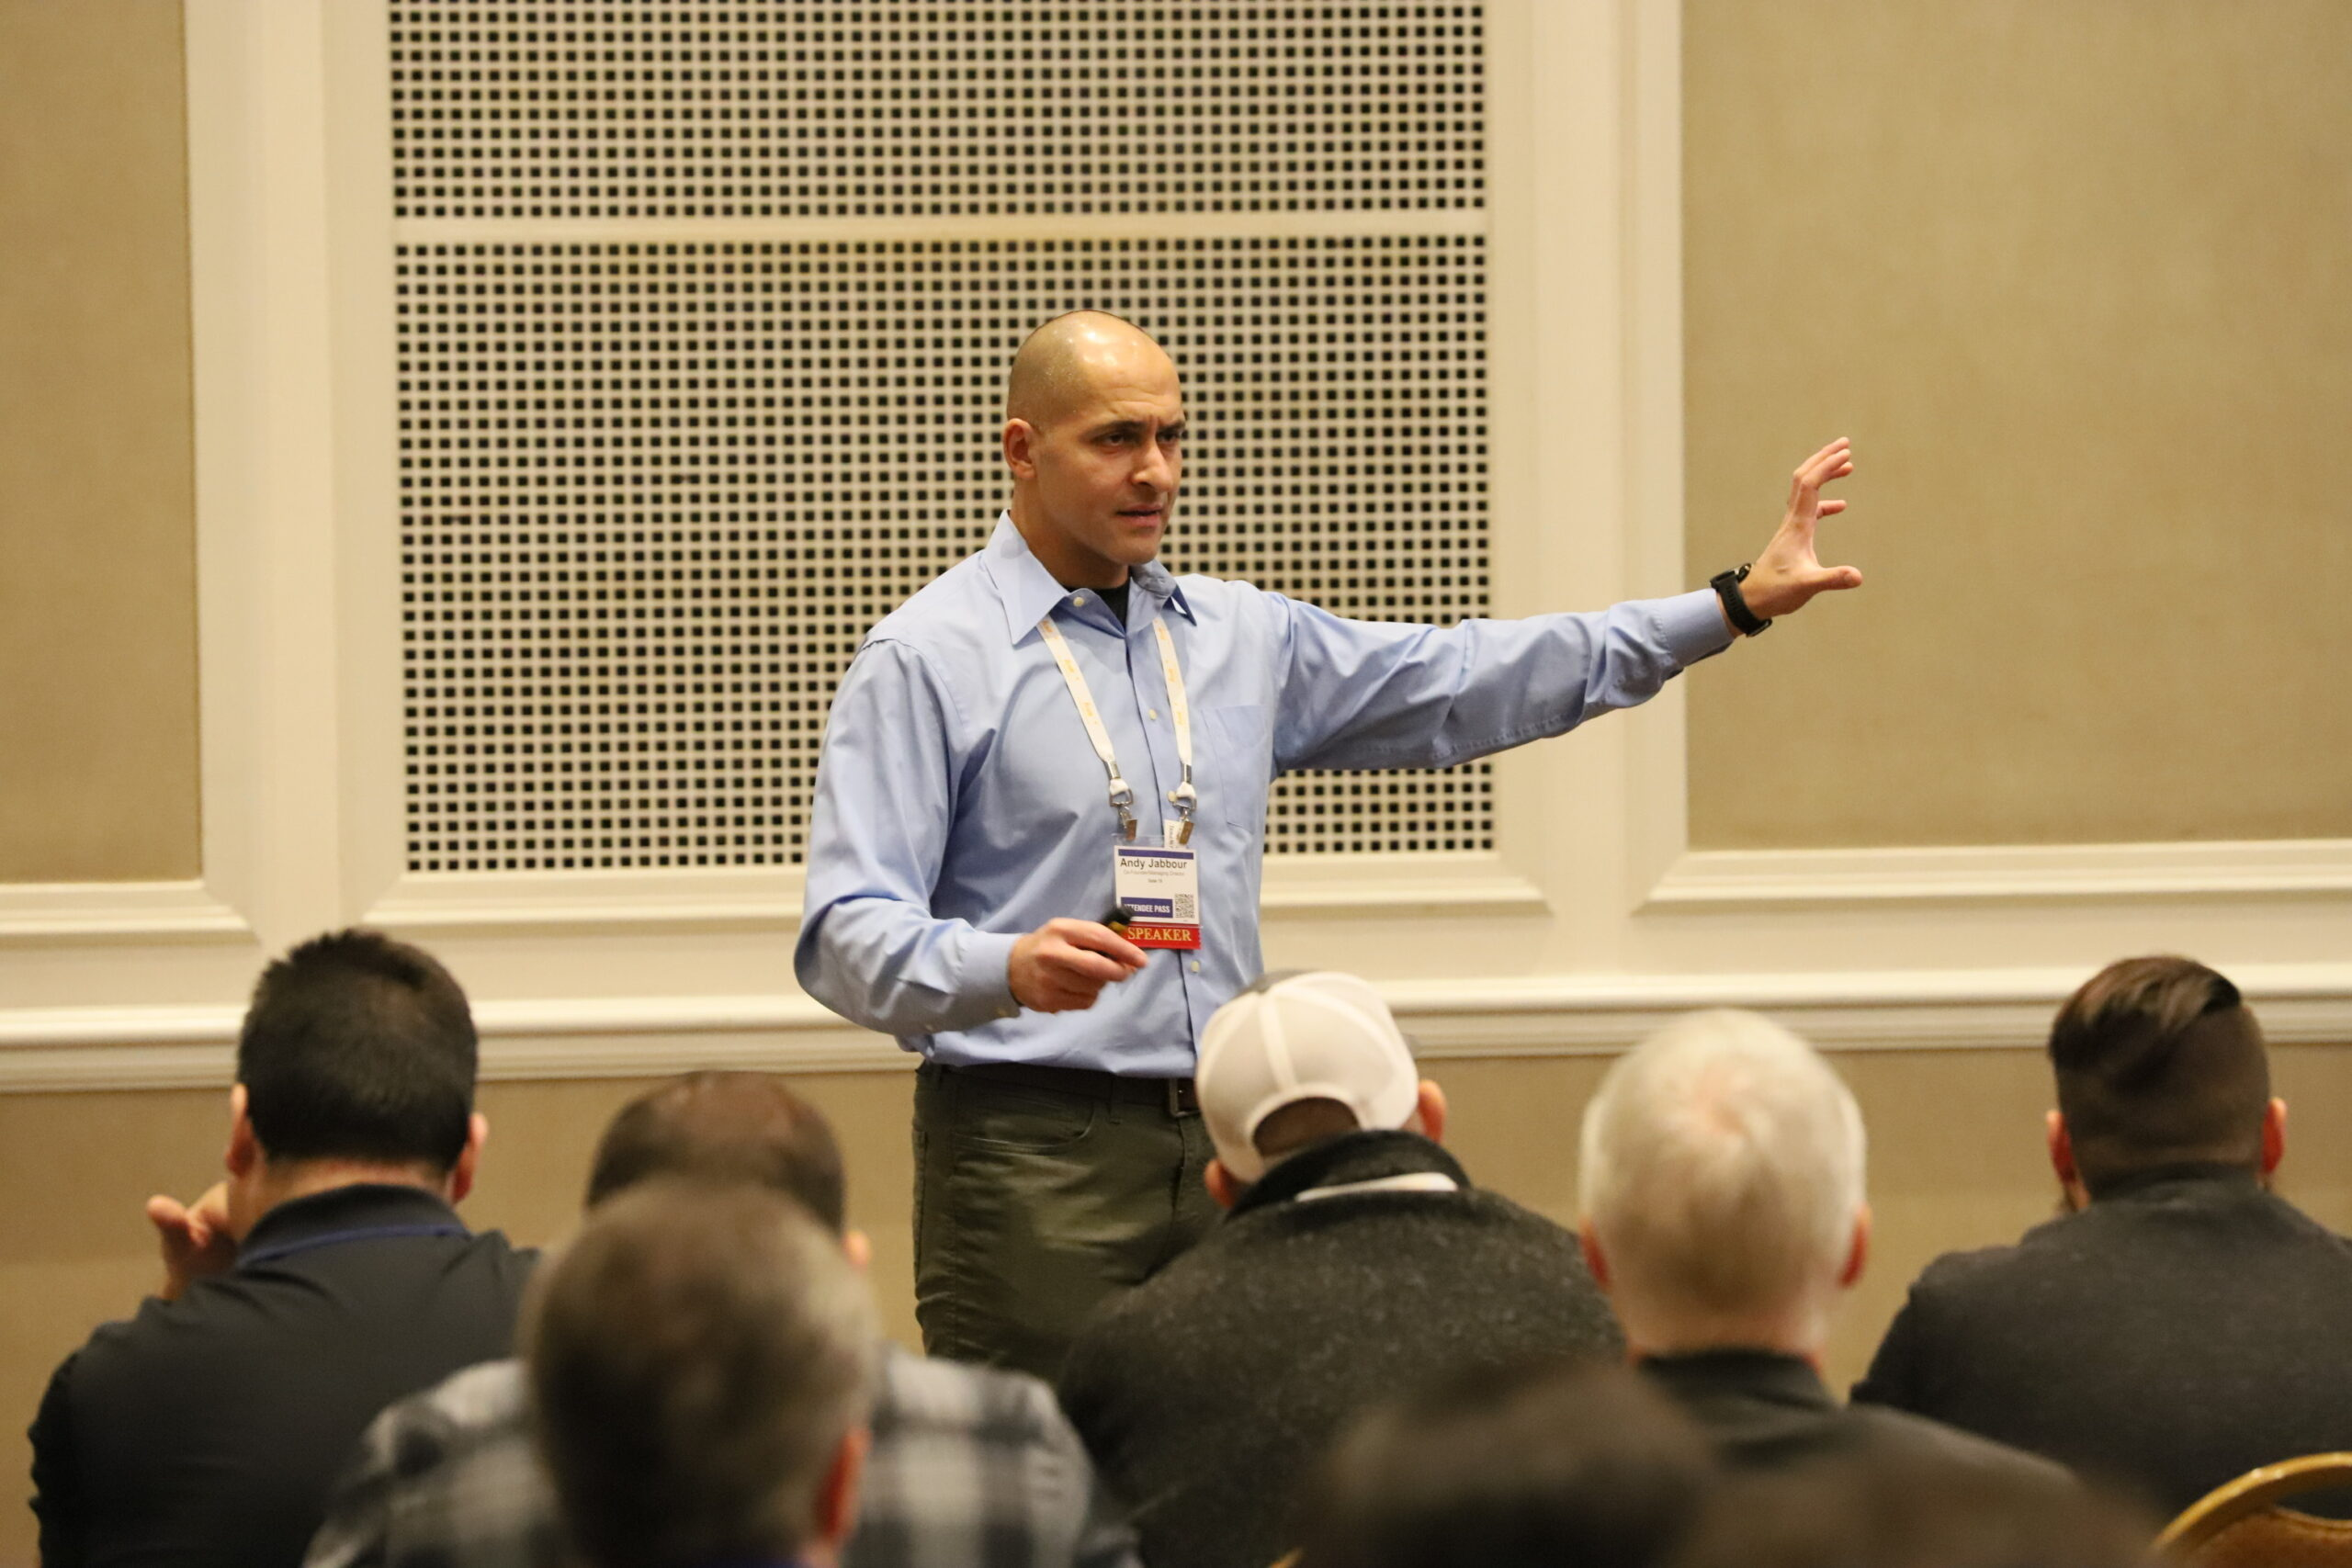 Andy Jabbour Speaks at a security seminar